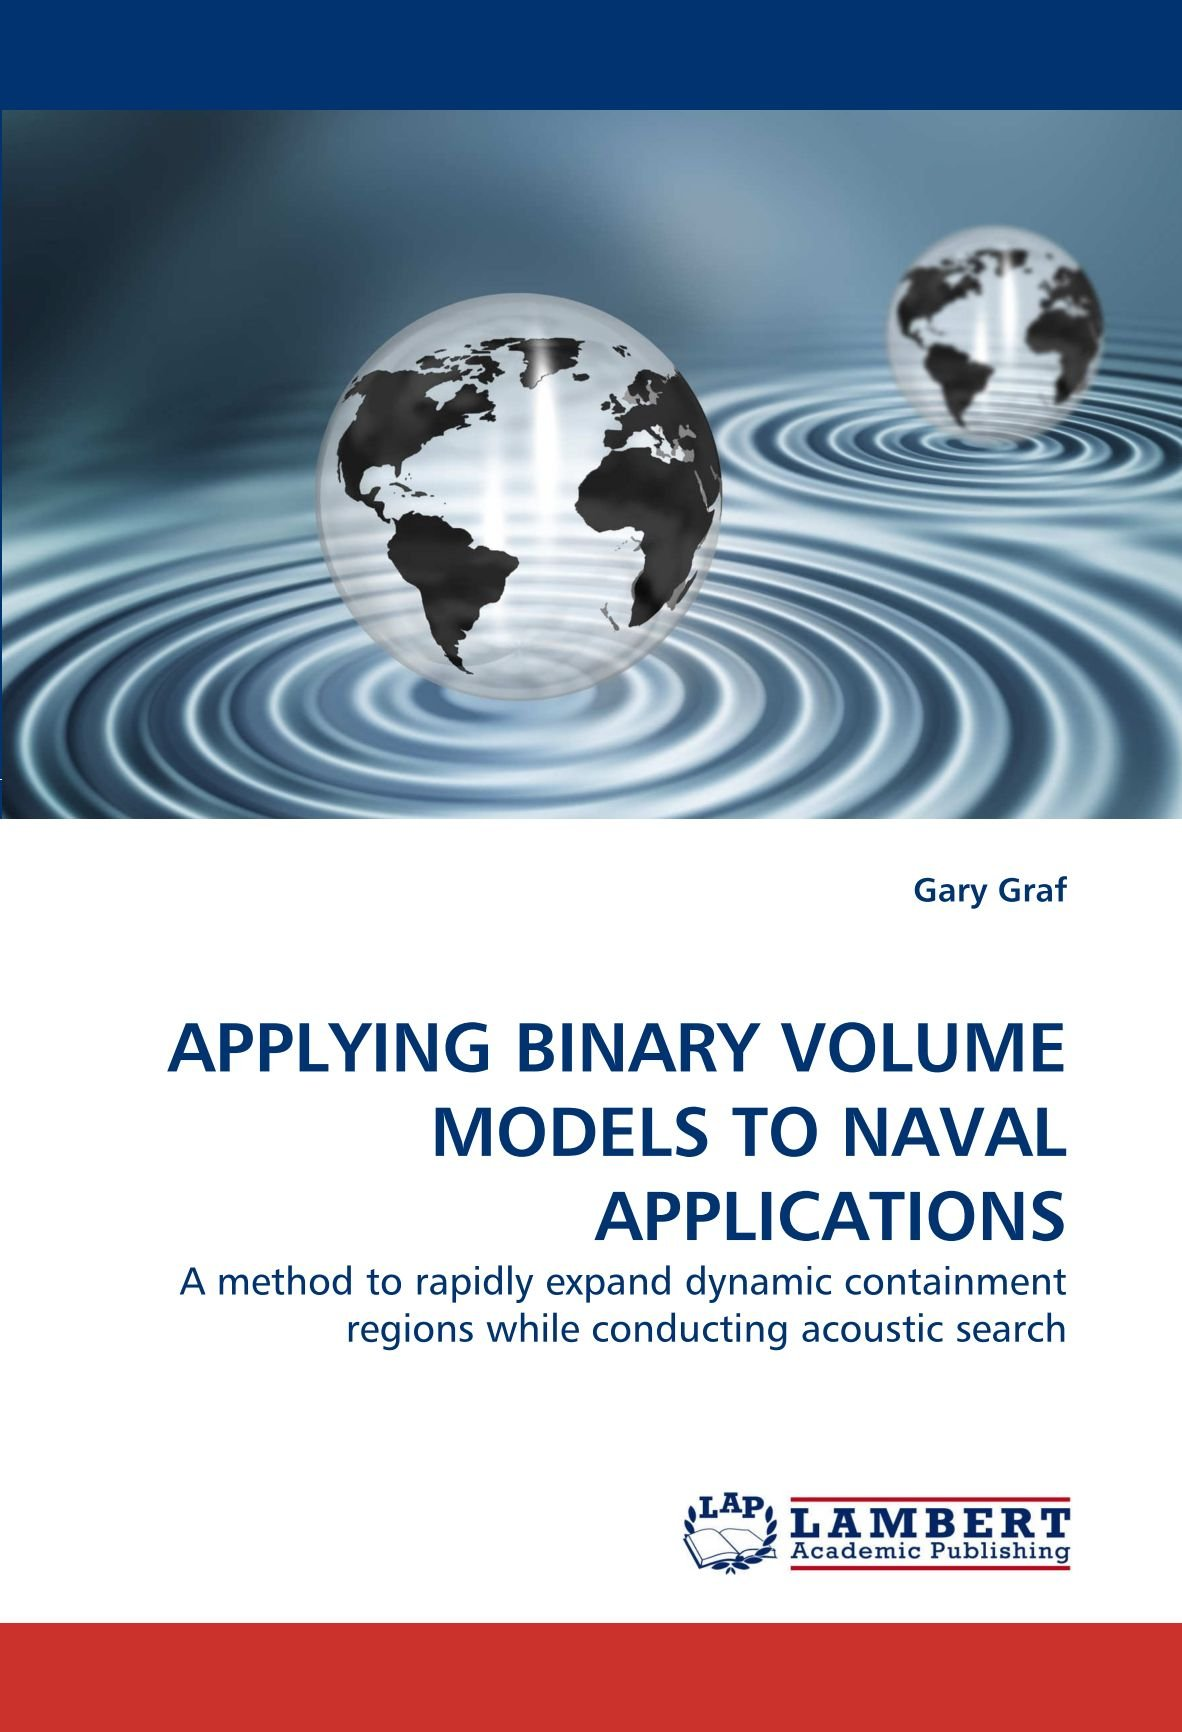 APPLYING BINARY VOLUME MODELS TO NAVAL APPLICATIONS: A method to rapidly expand dynamic containment regions while conducting acoustic search PDF